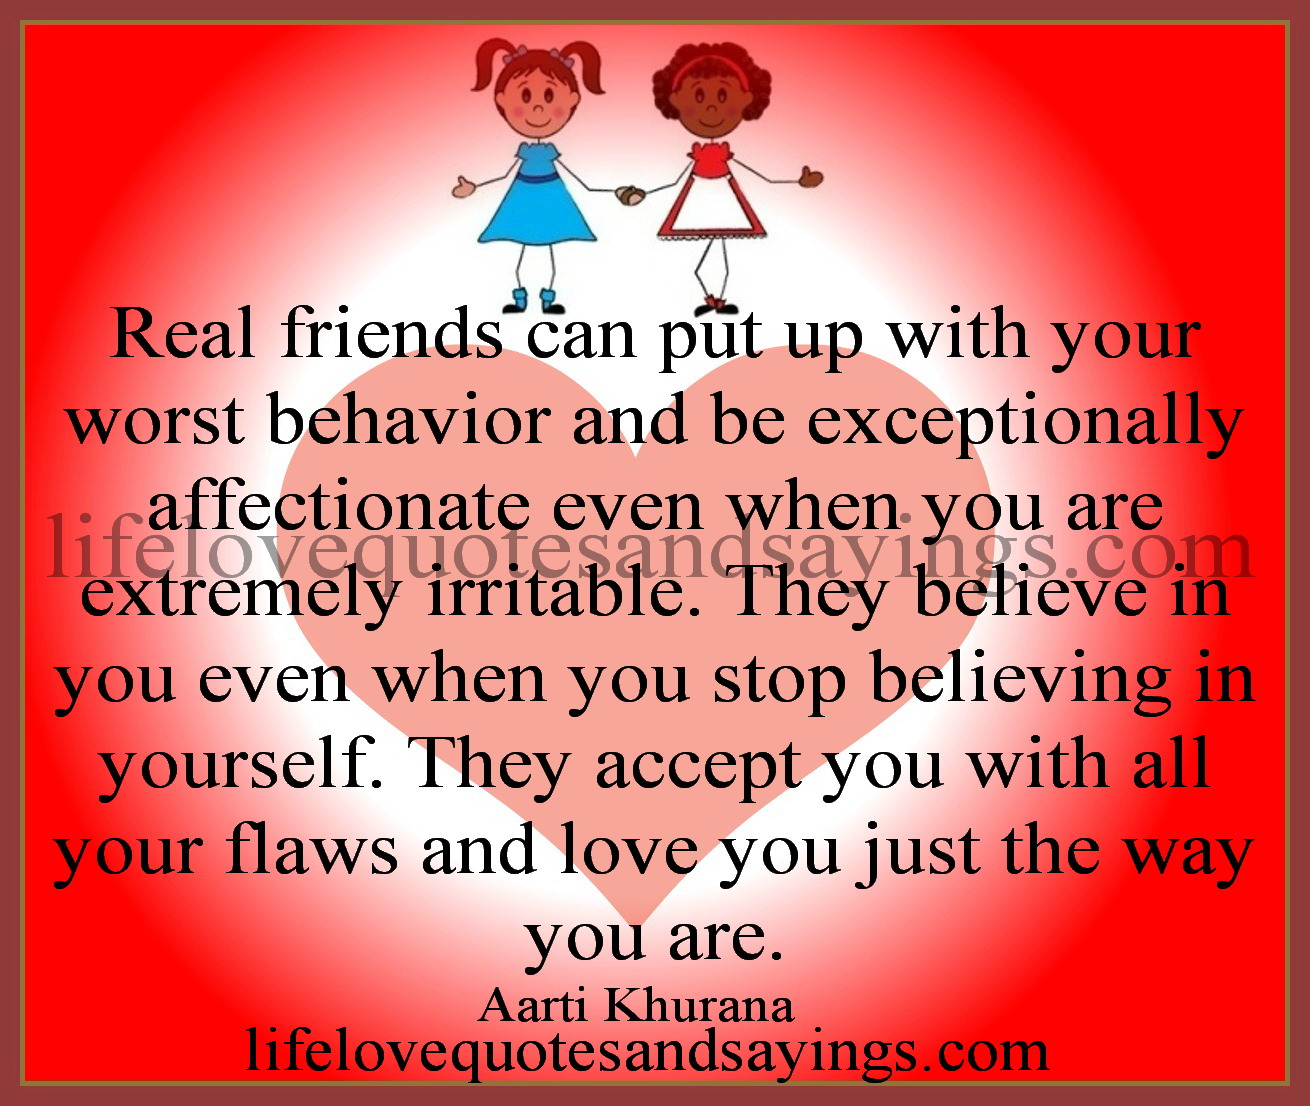 Love Finds You Quote: True Love And Friendship Quotes. QuotesGram